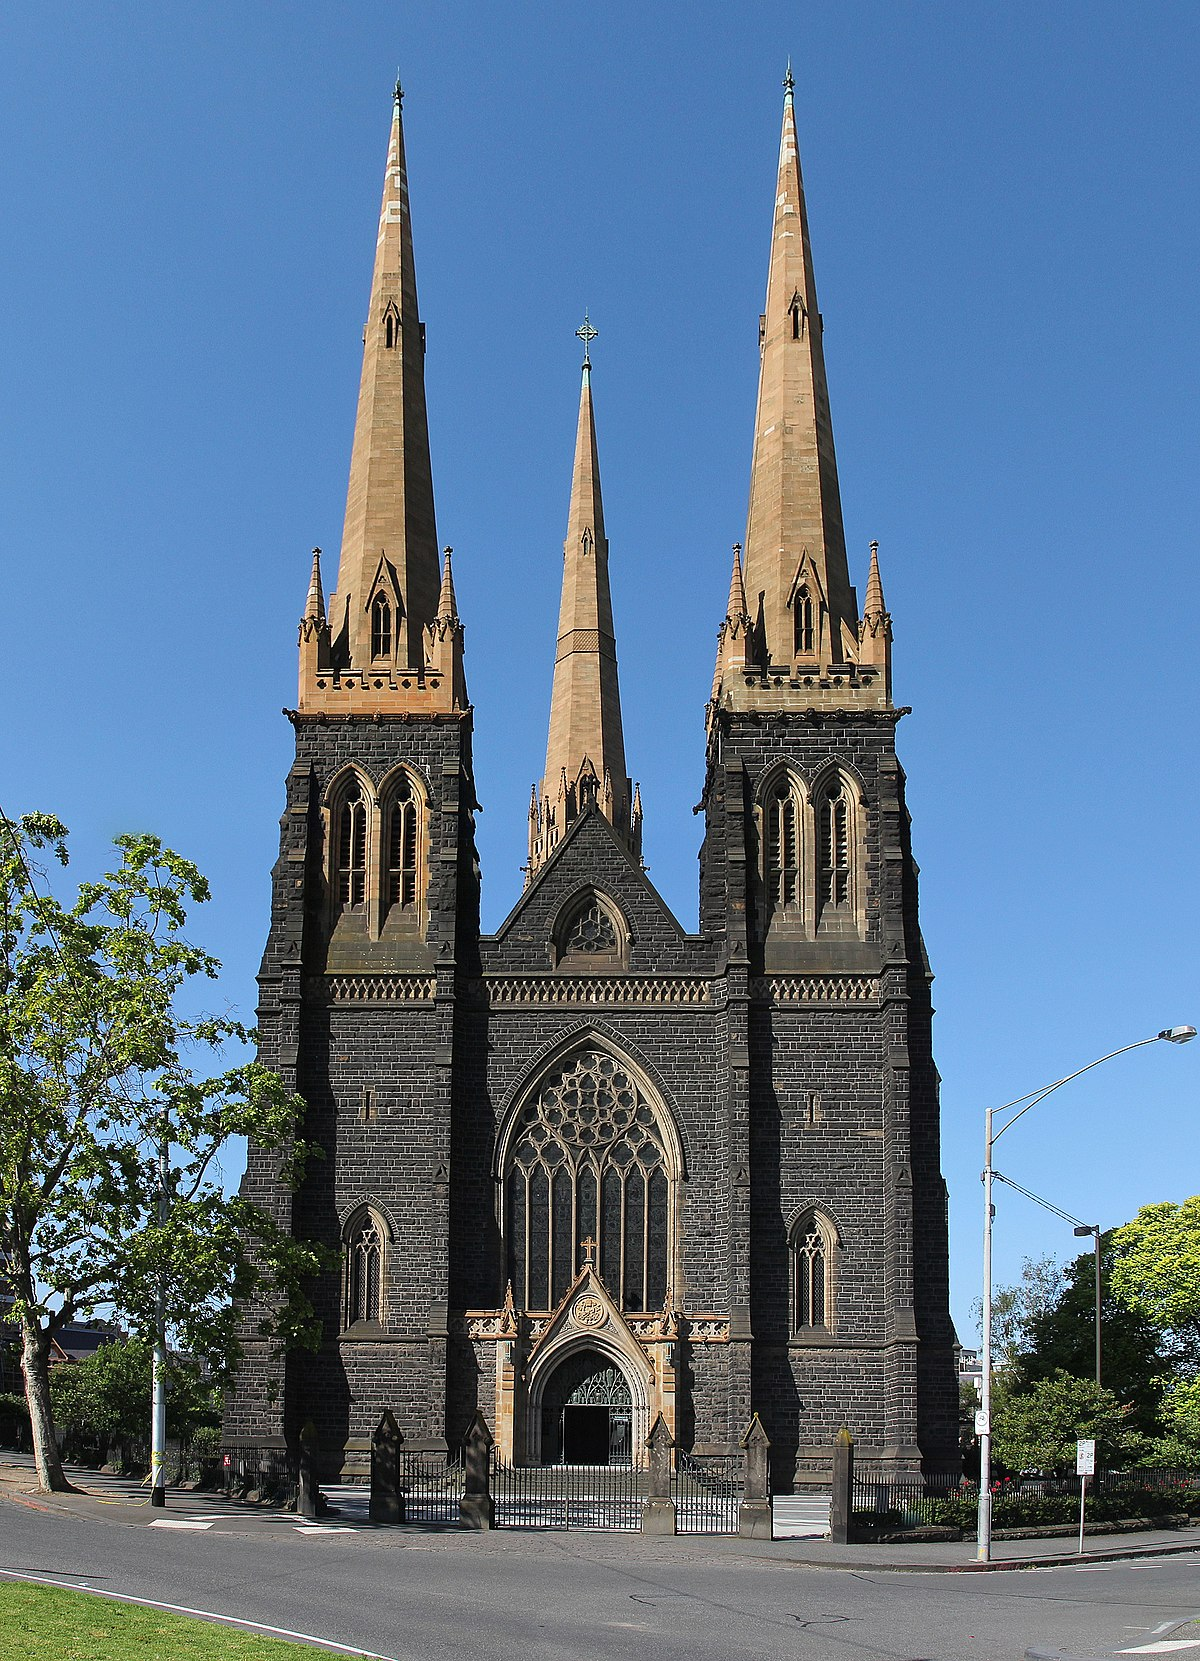 melbourne catholic cathedral patrick st revival archdiocese wikipedia gothic church patricks saint roman san place famous australia cathedrals architecture south